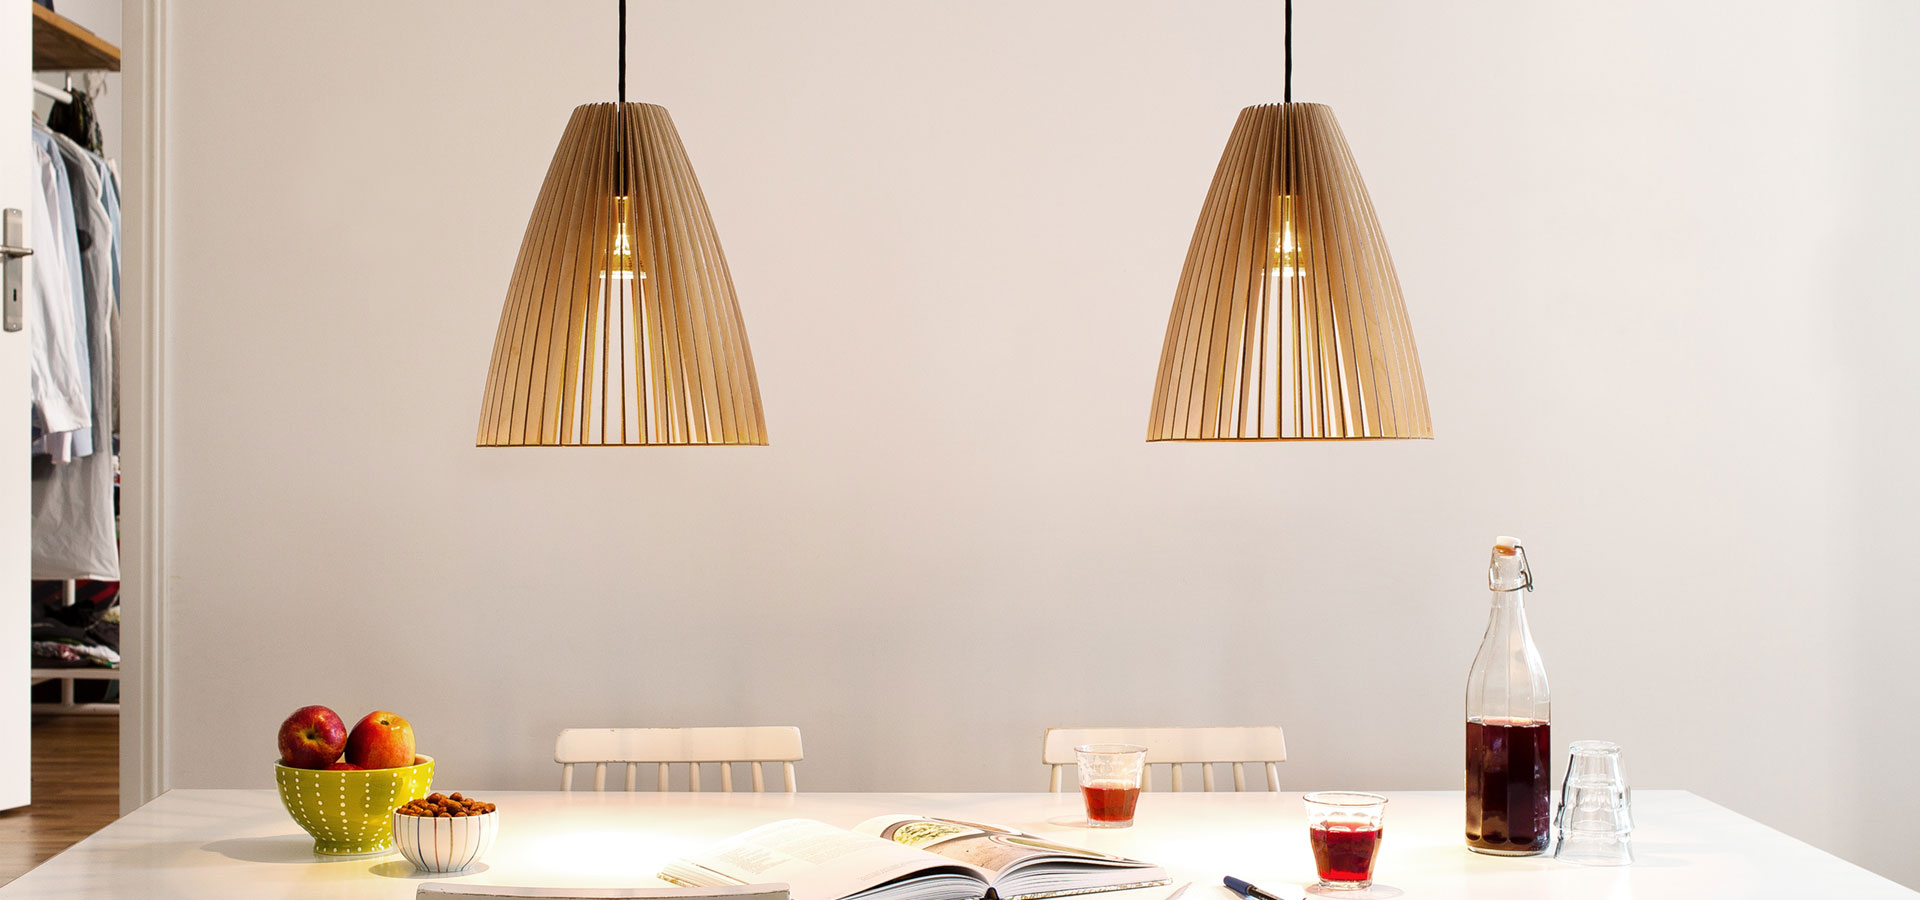 Lampengeschäfte Berlin Wooden Lights Wooden Lamps Pendant Lights Handmade In Berlin